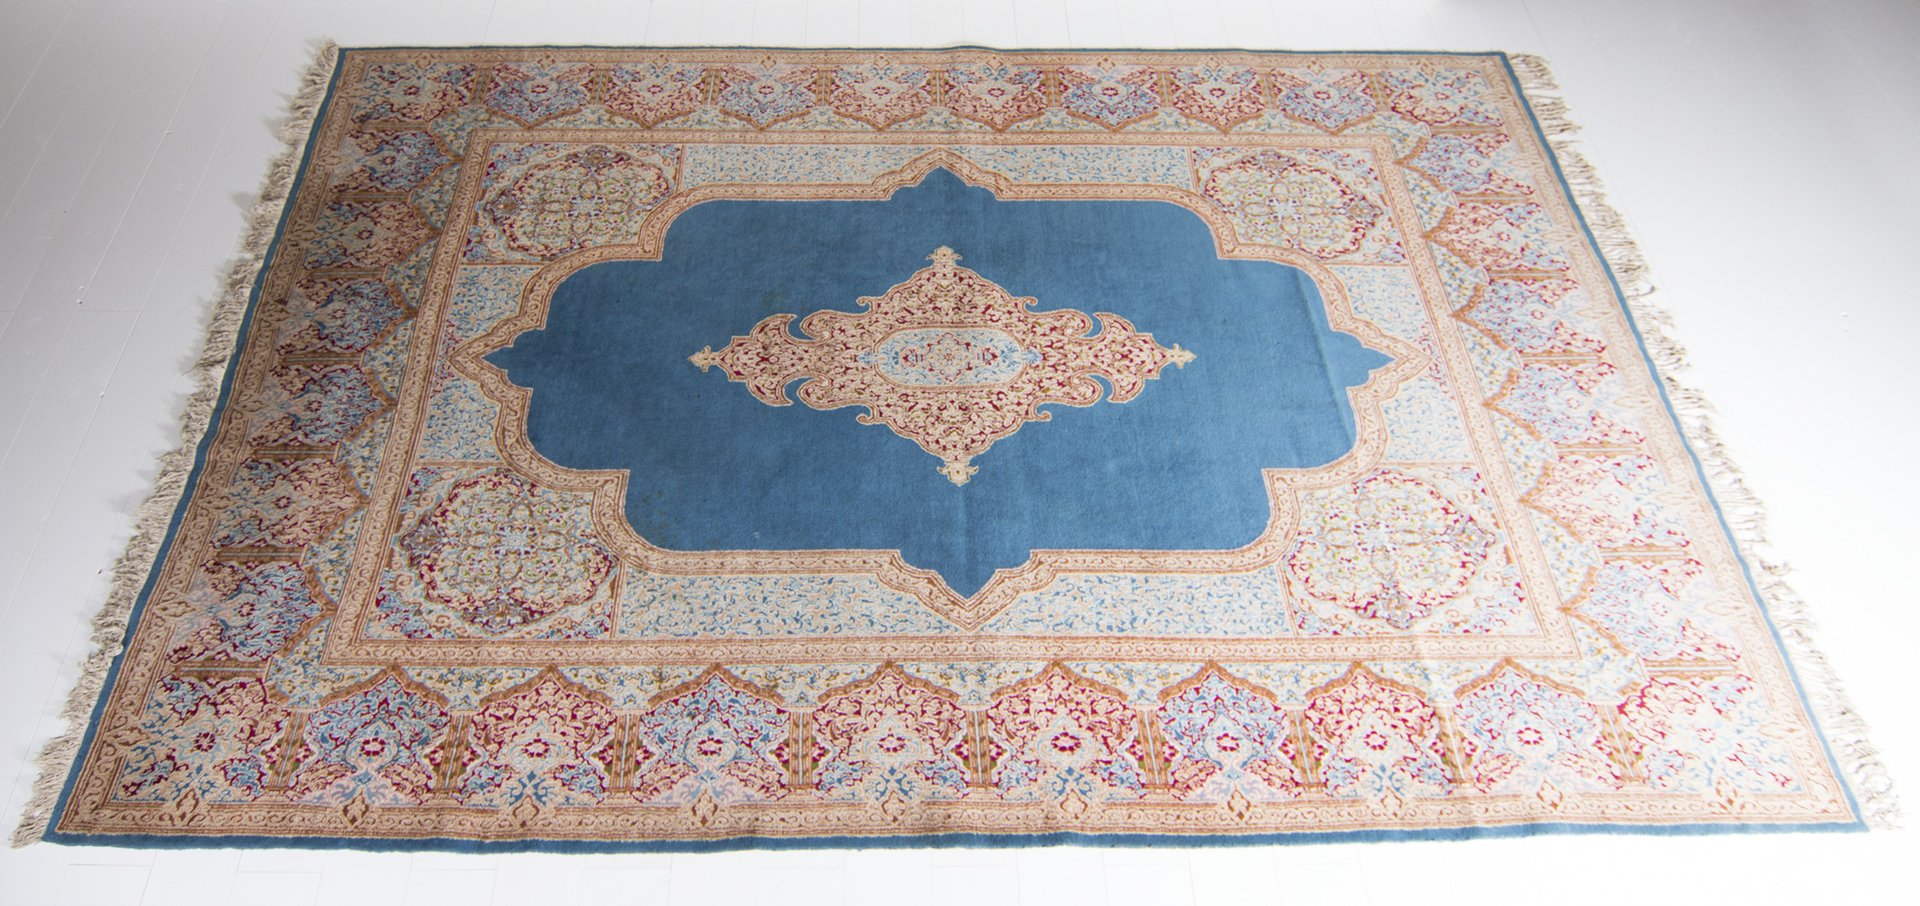 grand tapis vintage bleu rouge rose et beige iran en vente sur pamono. Black Bedroom Furniture Sets. Home Design Ideas